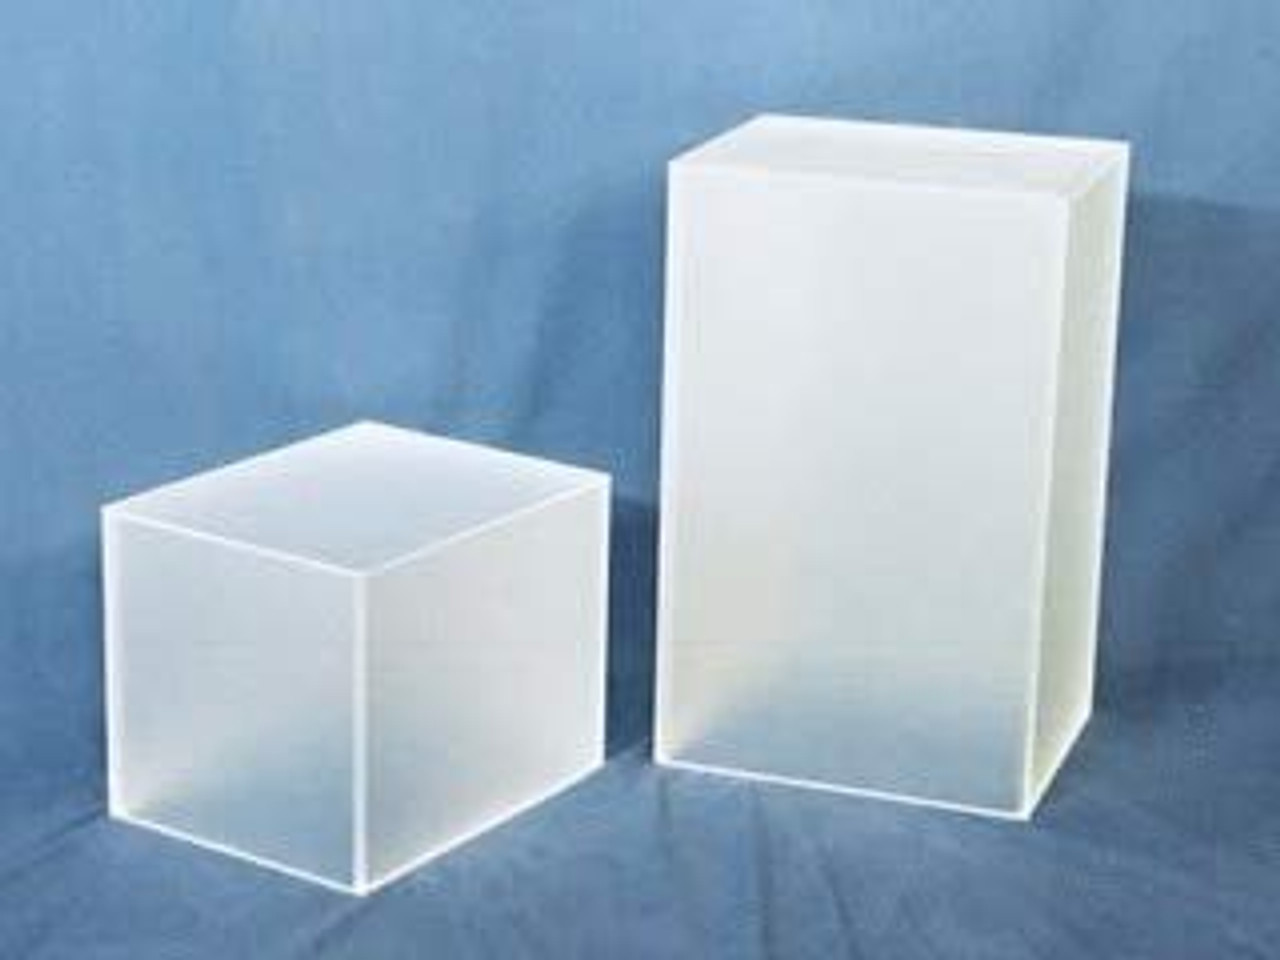 Rectangular Acrylic Display Cube, Frosted Finish, White, 12 Inch